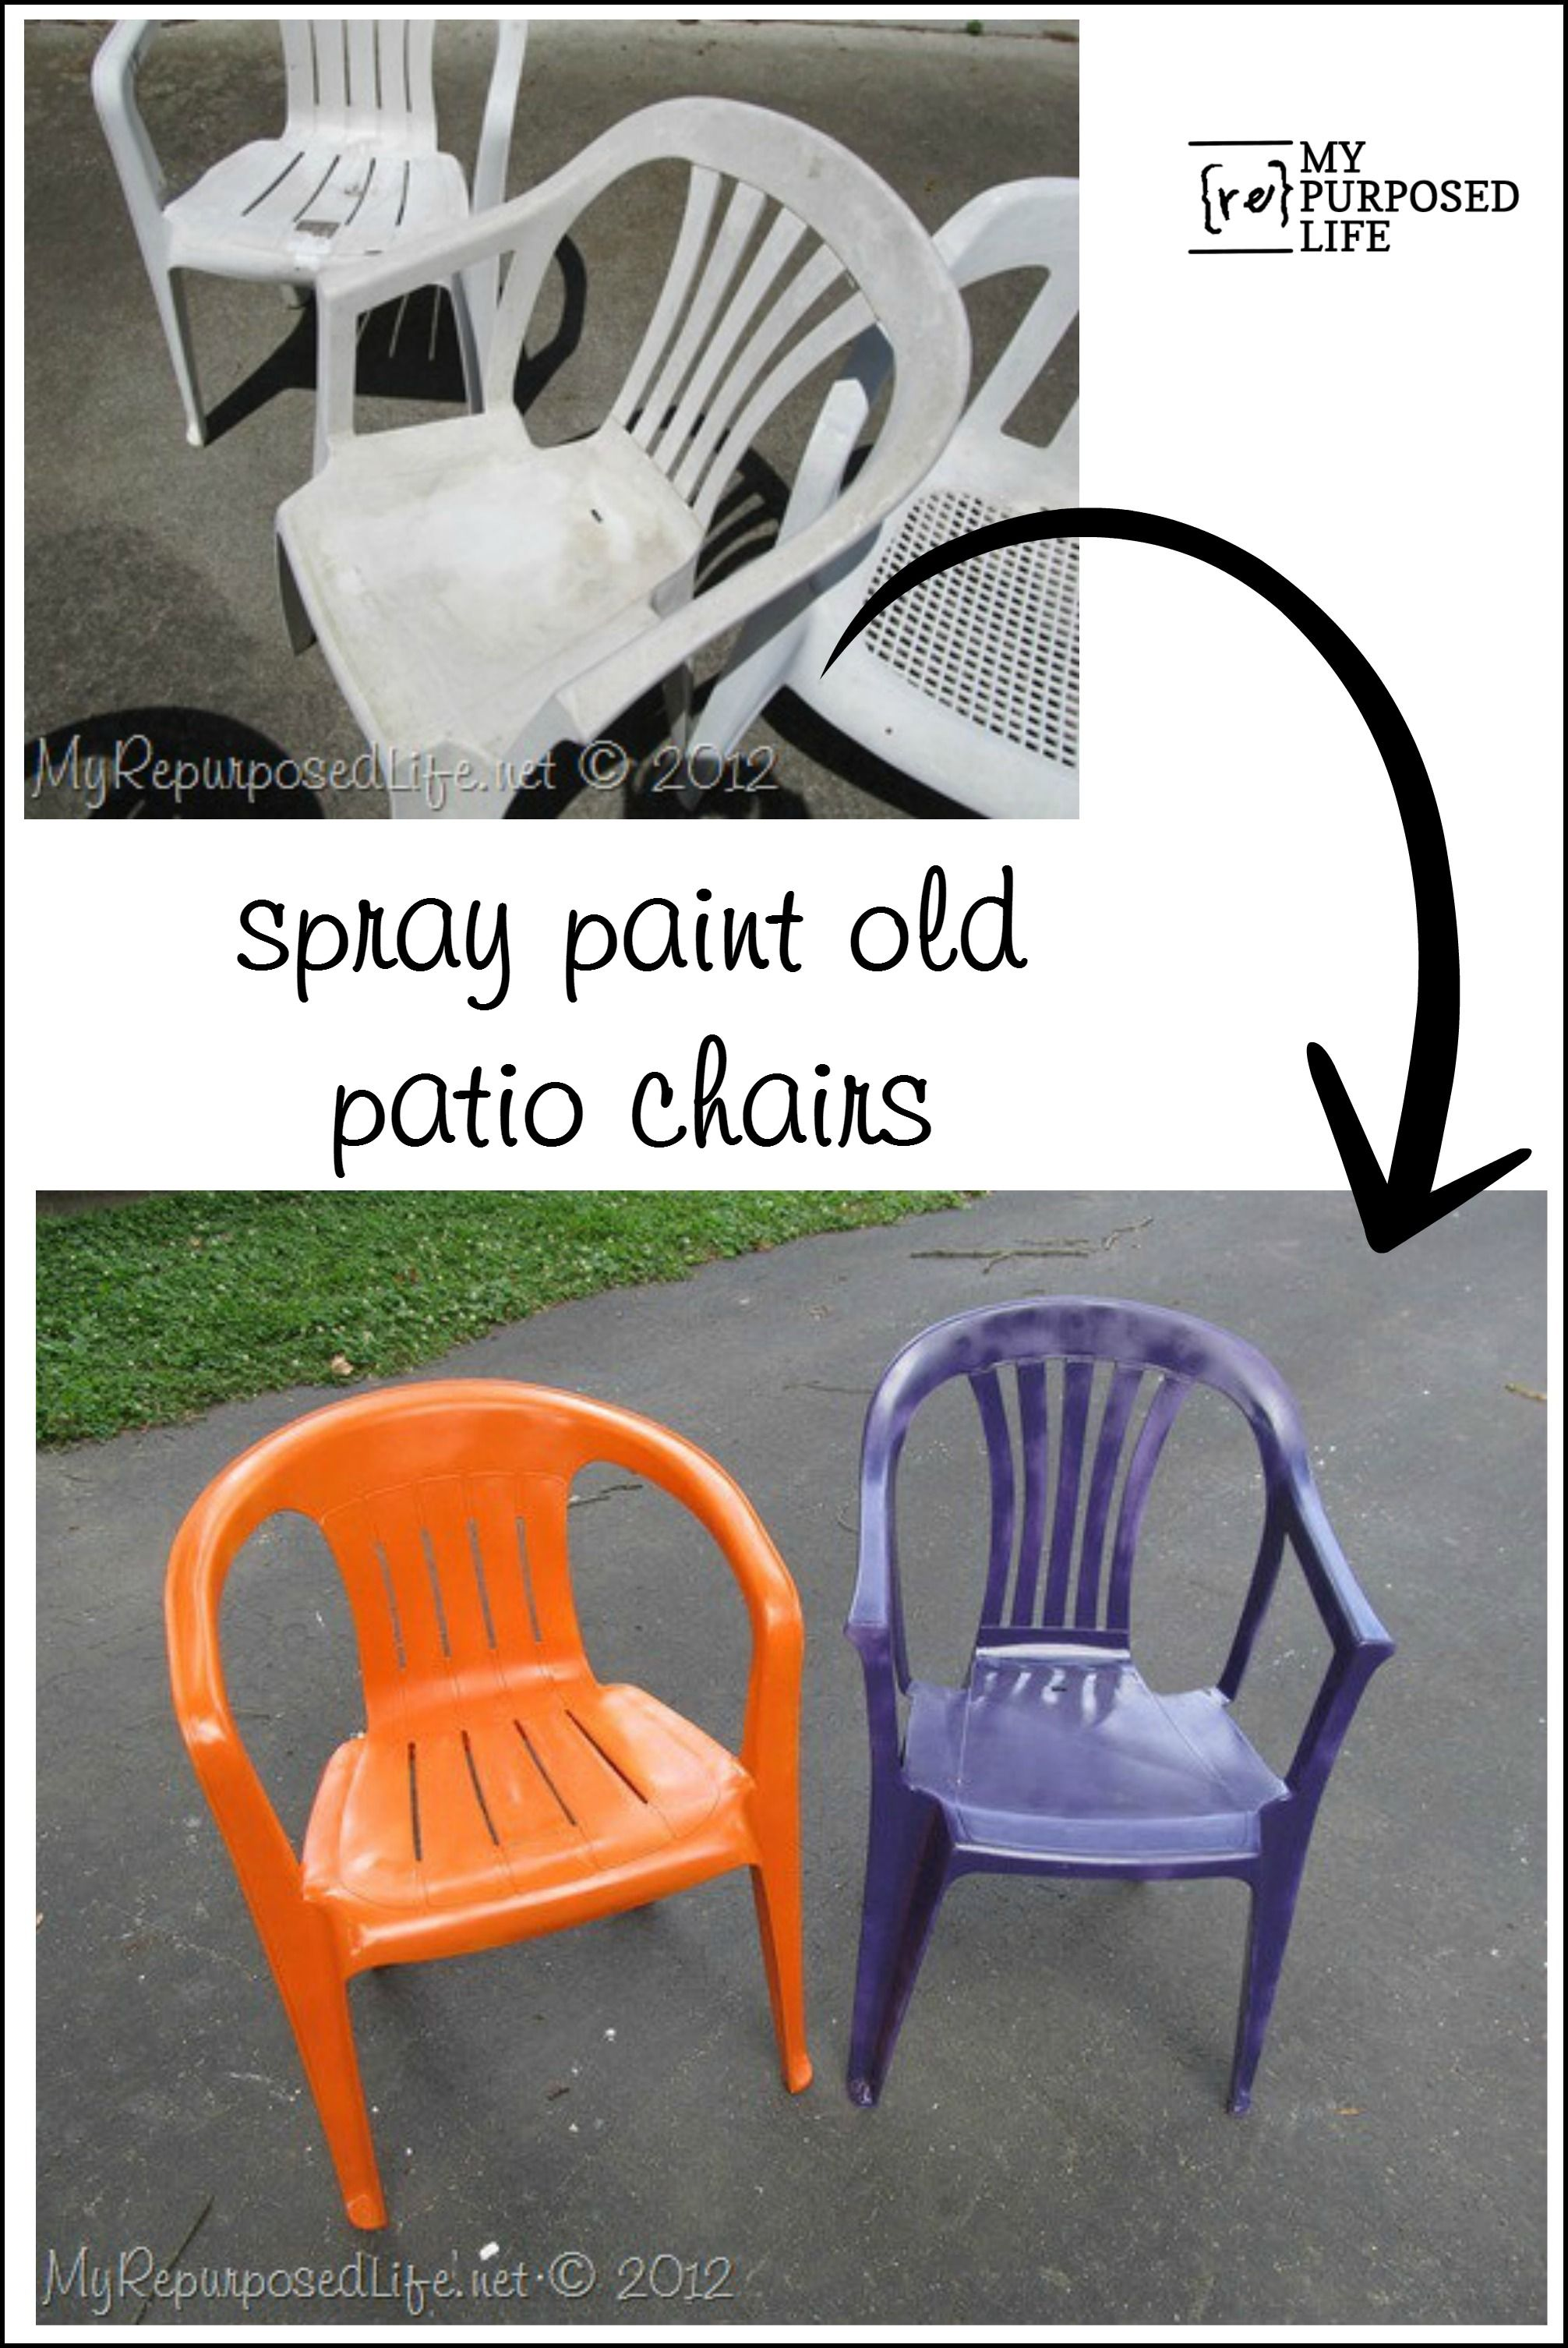 how to paint plastic chairs hanging with stand spray bloggers best diy ideas pinterest you know those old white have they are pitted and ugly easy fix some colorful